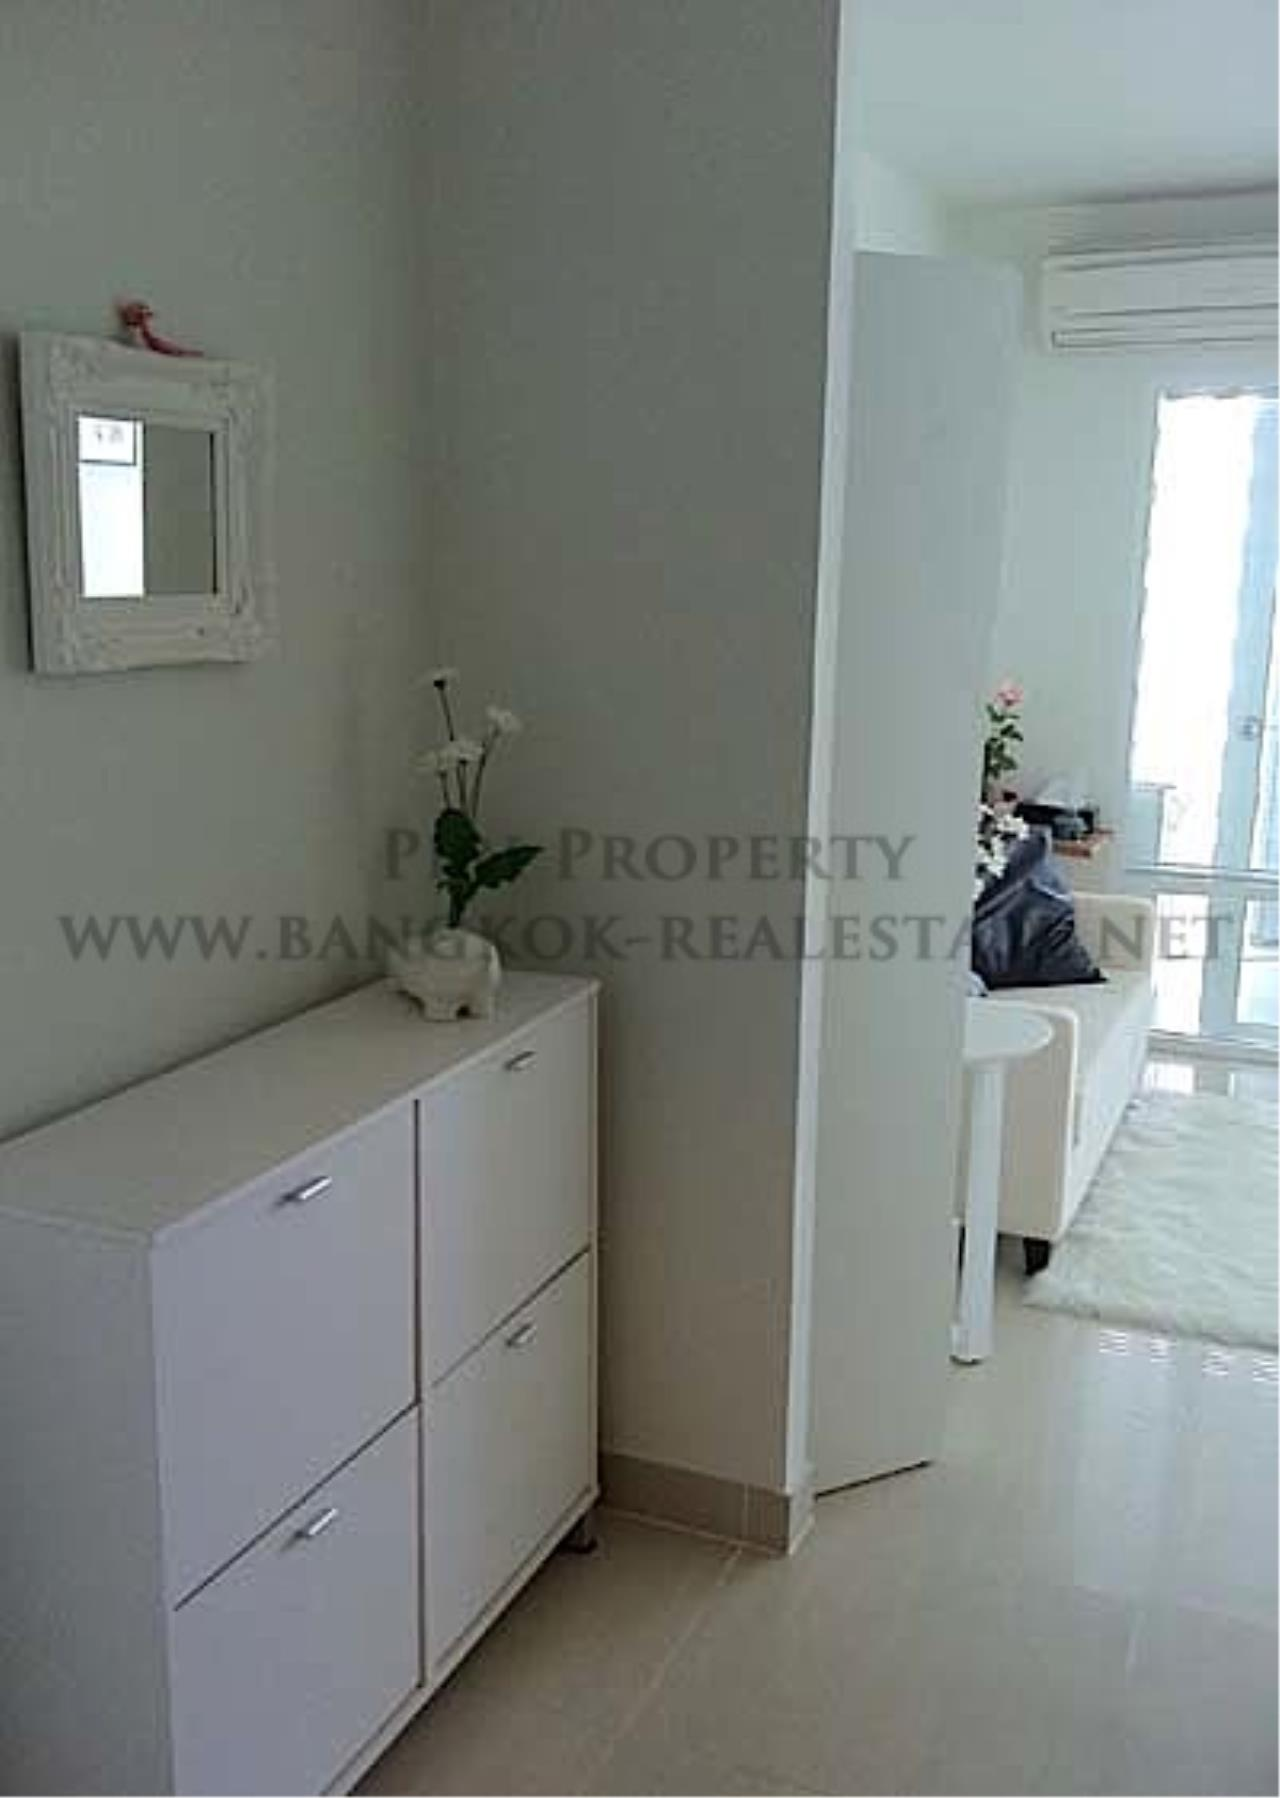 Piri Property Agency's iHouse - Nicely Furnished One Bedroom Unit 4